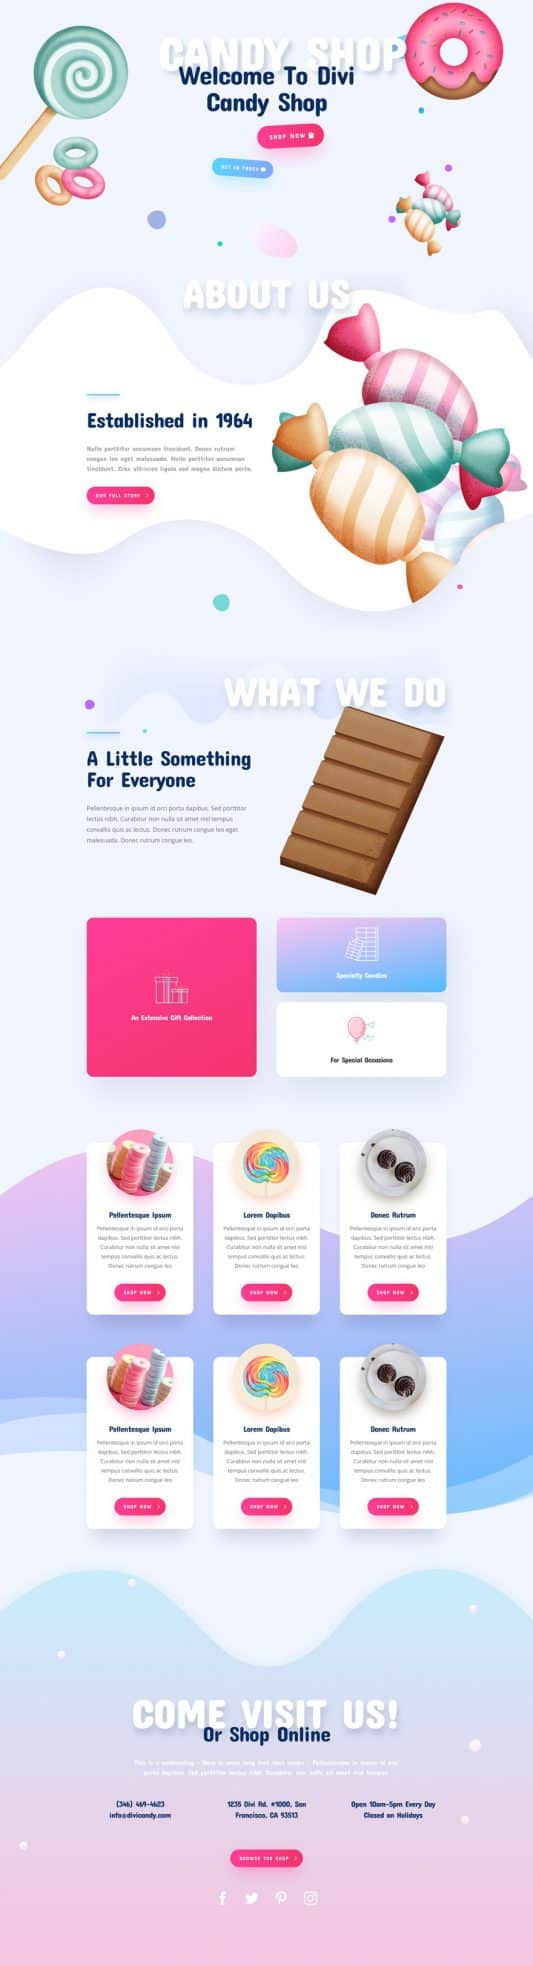 Candy Shop Web Design 2